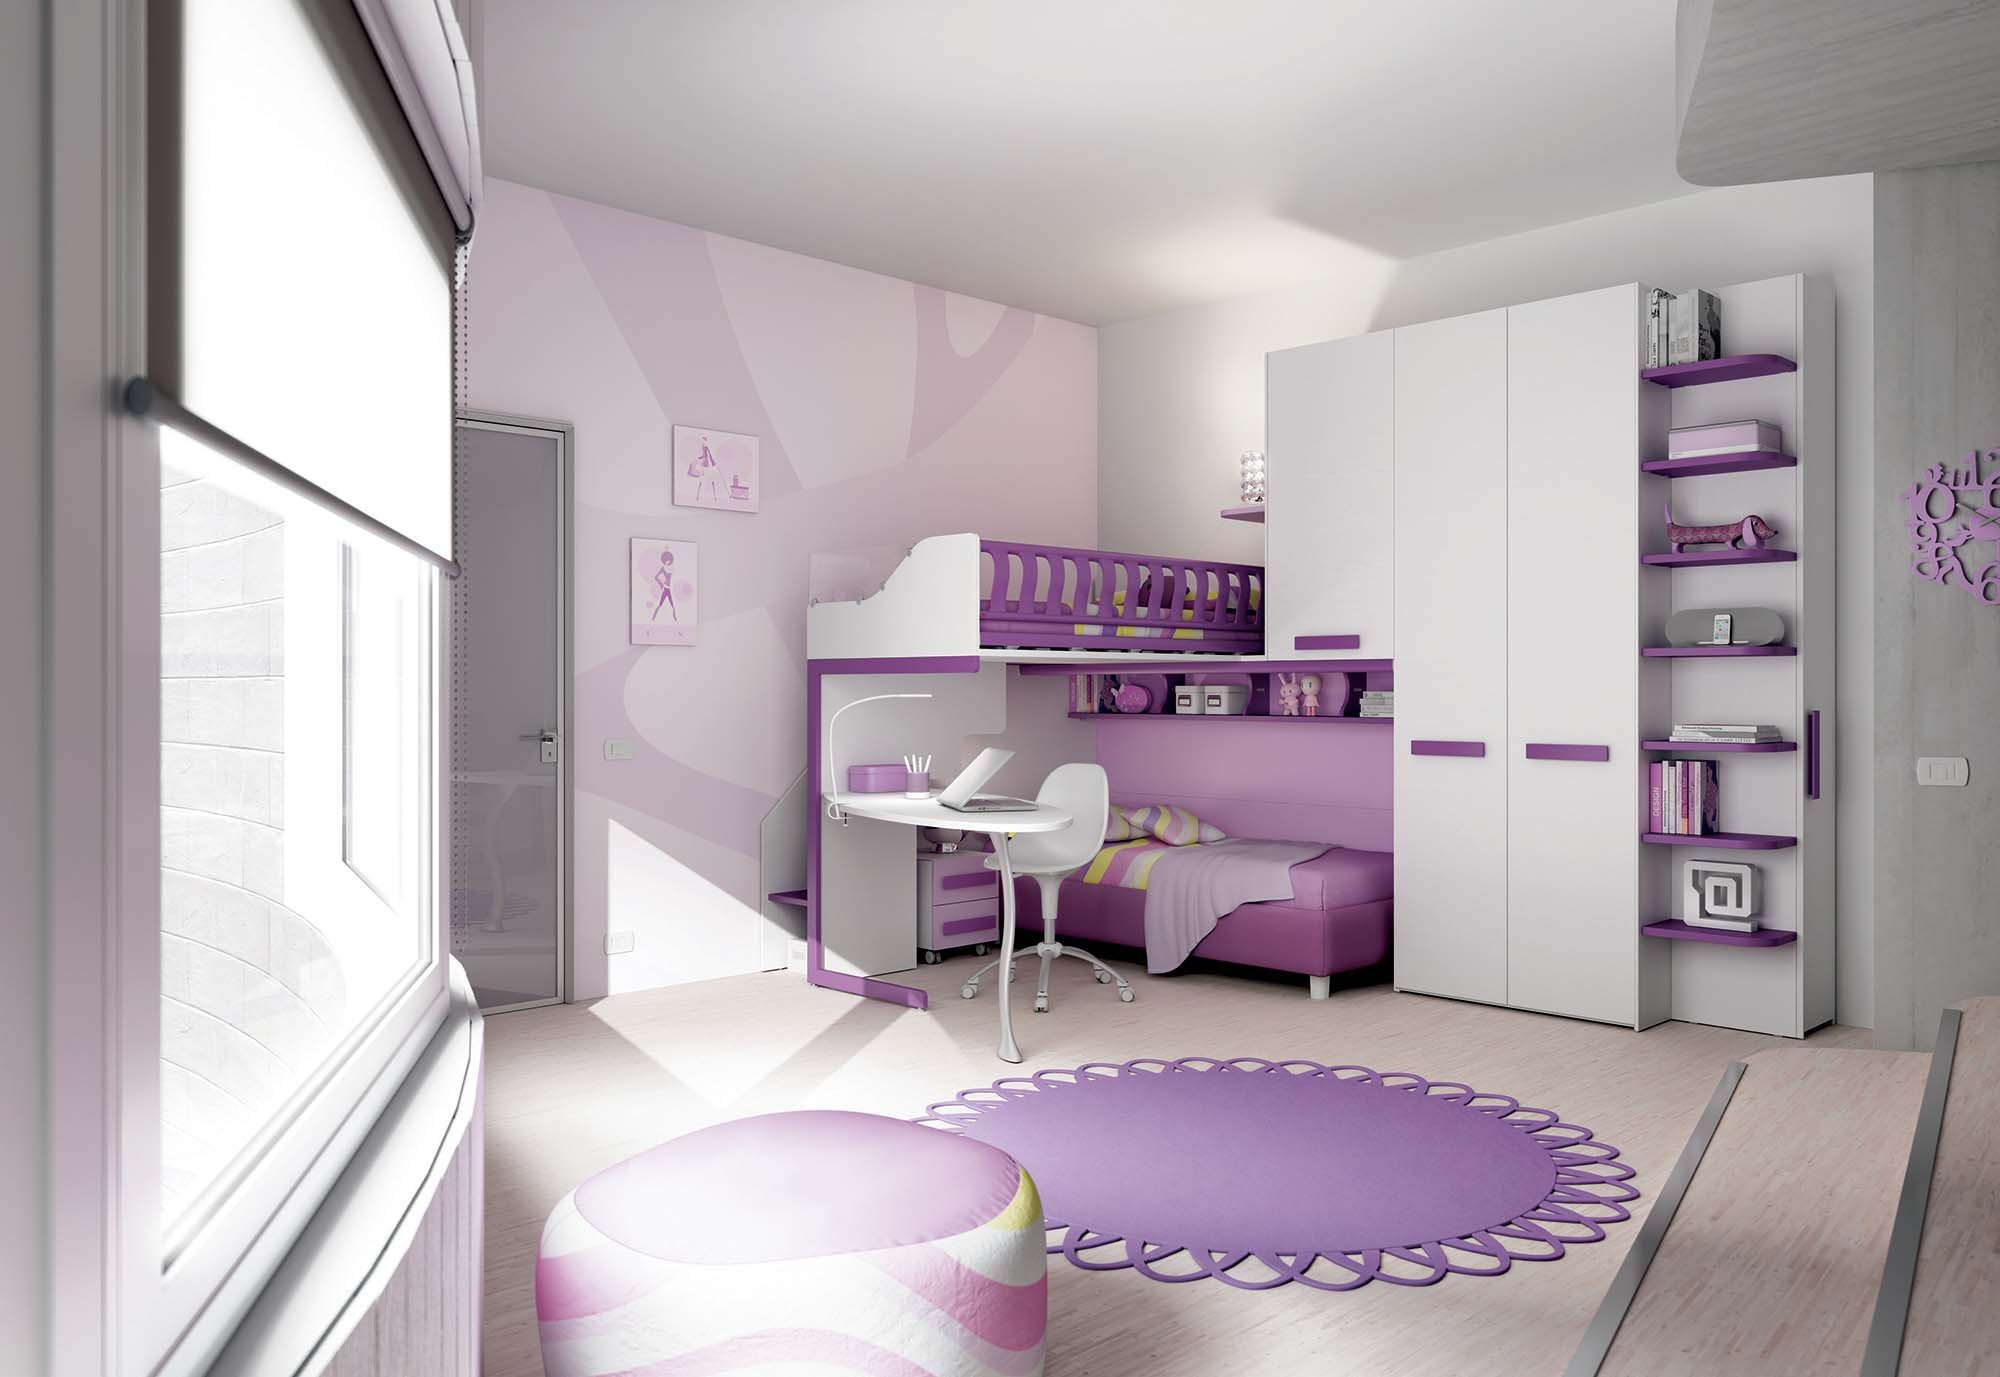 Amenagement Mezzanine Chambre ~ Myfrdesign.co